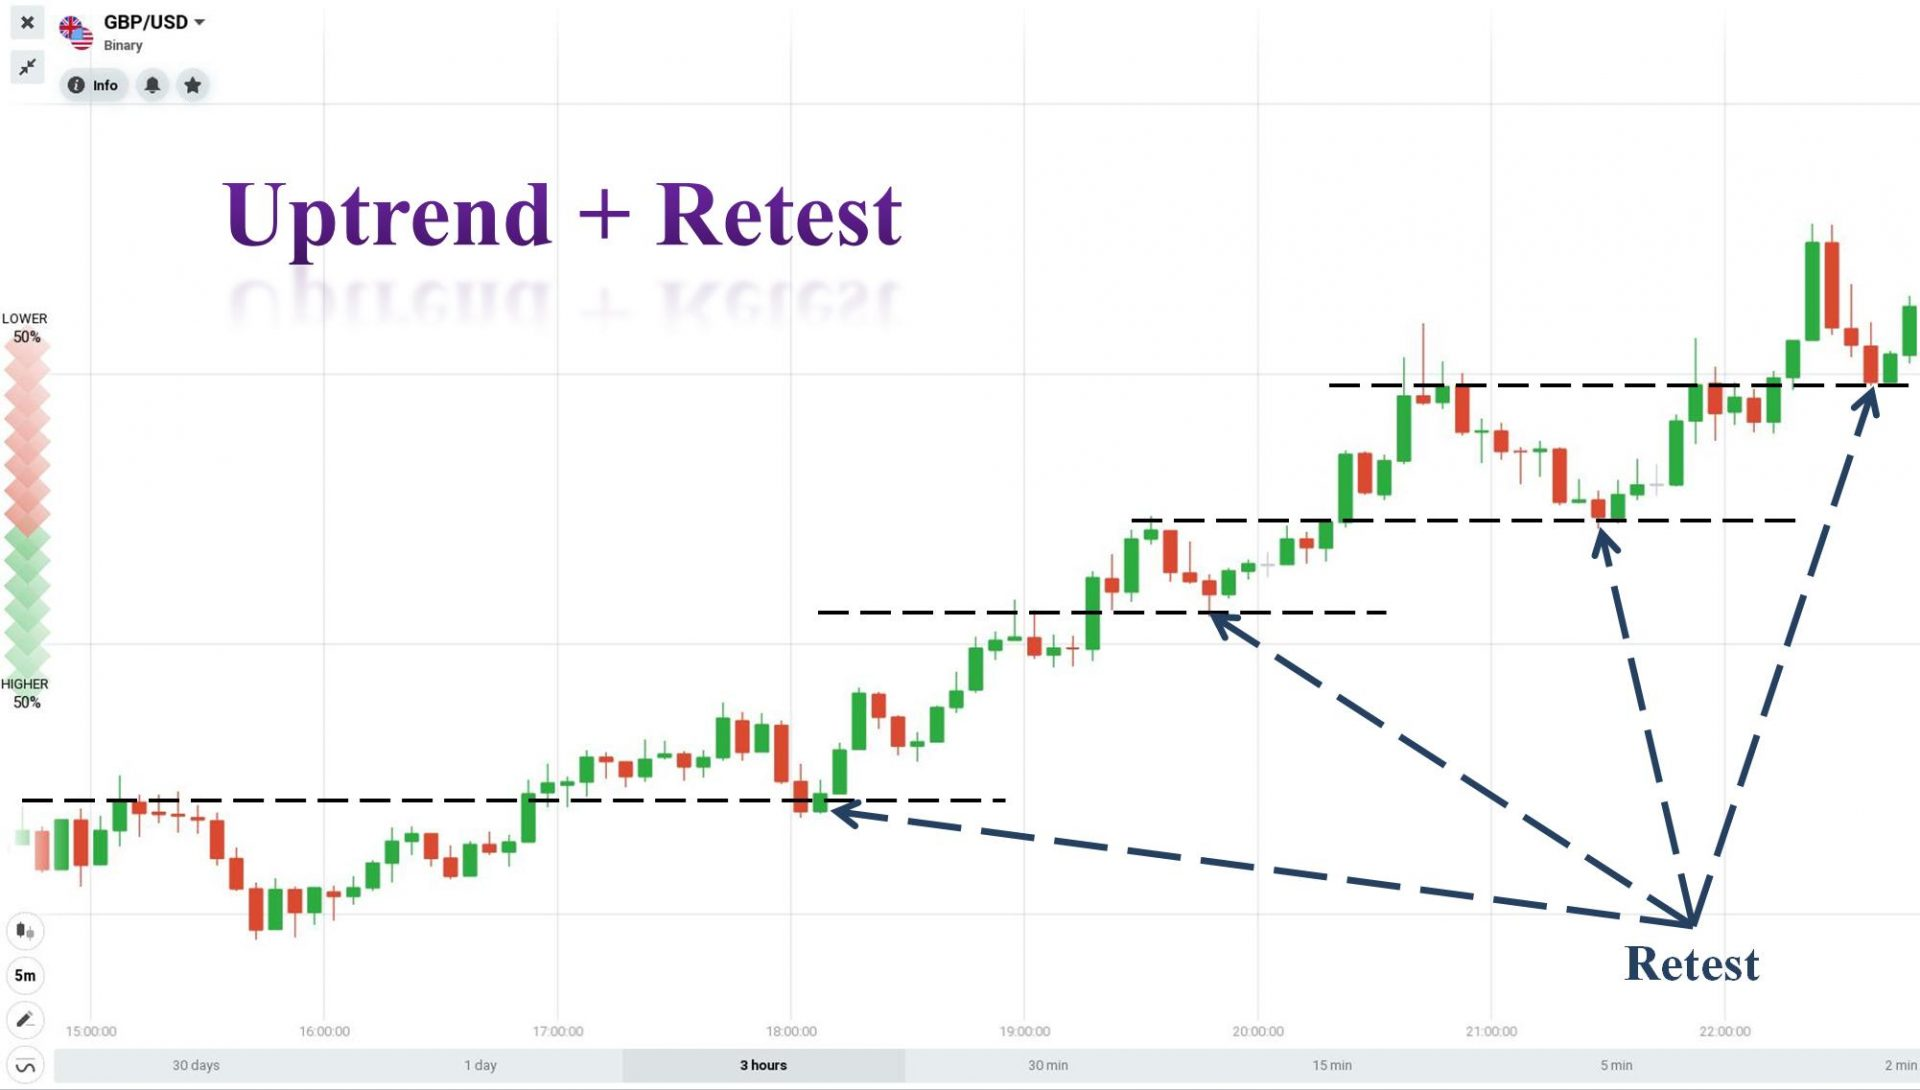 Retest in an Uptrend